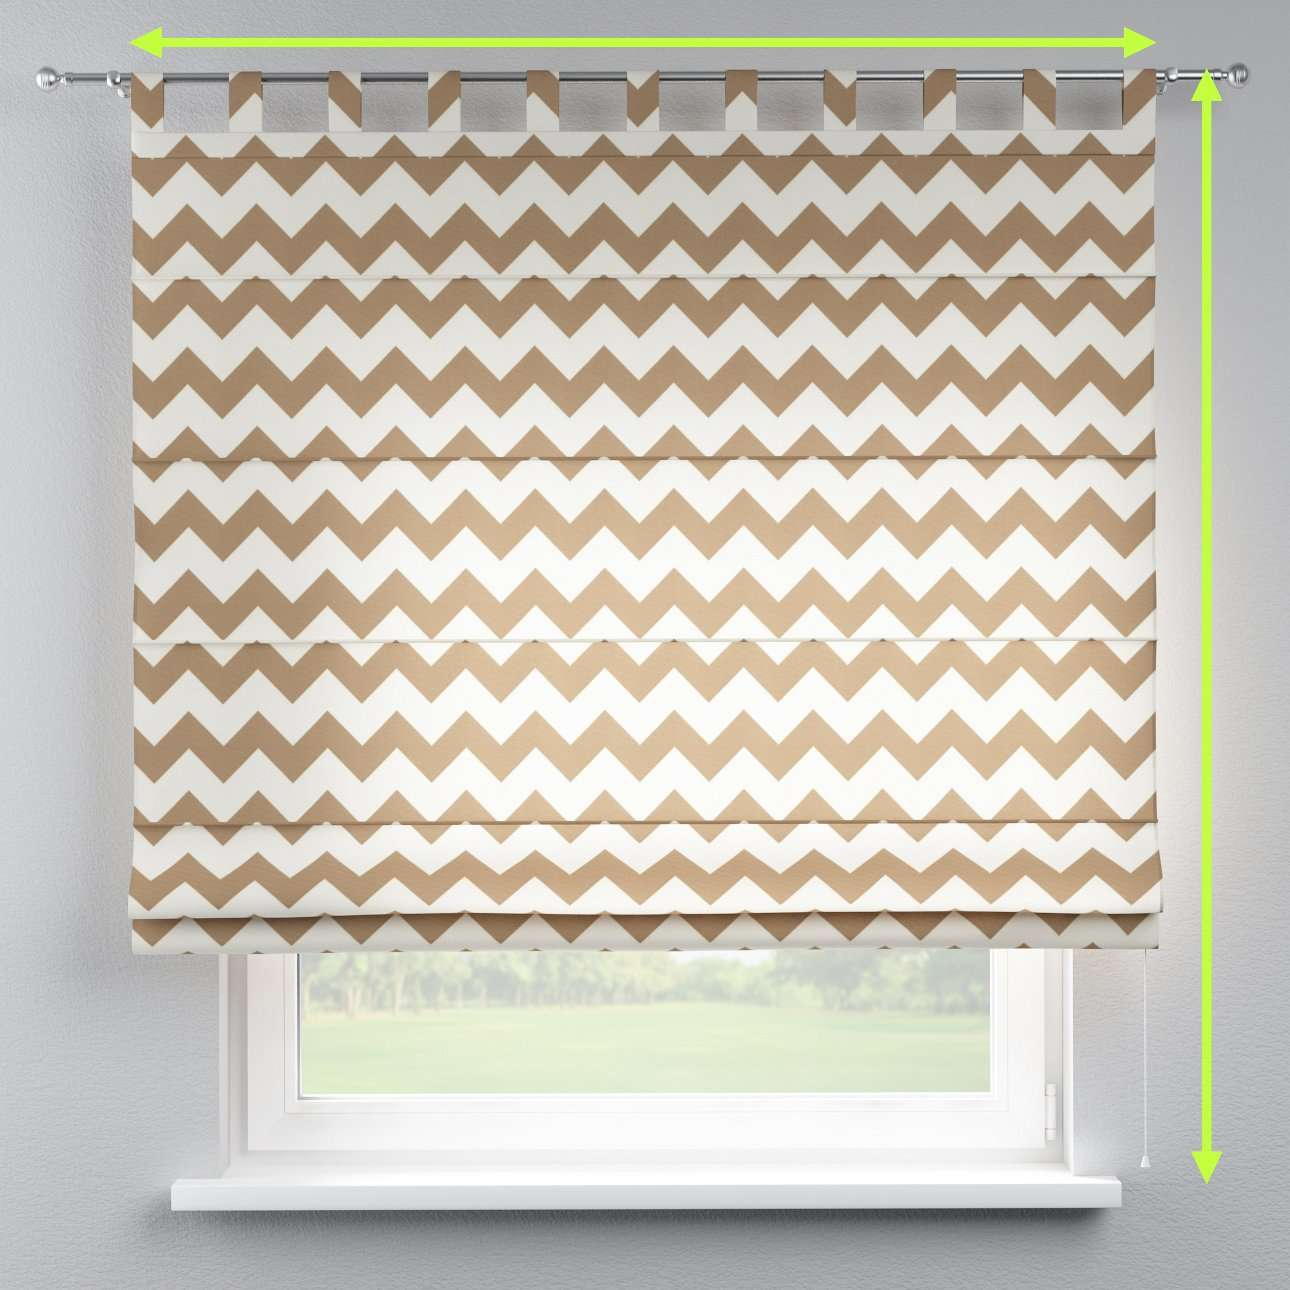 Verona tab top roman blind in collection Comic Book & Geo Prints, fabric: 135-01